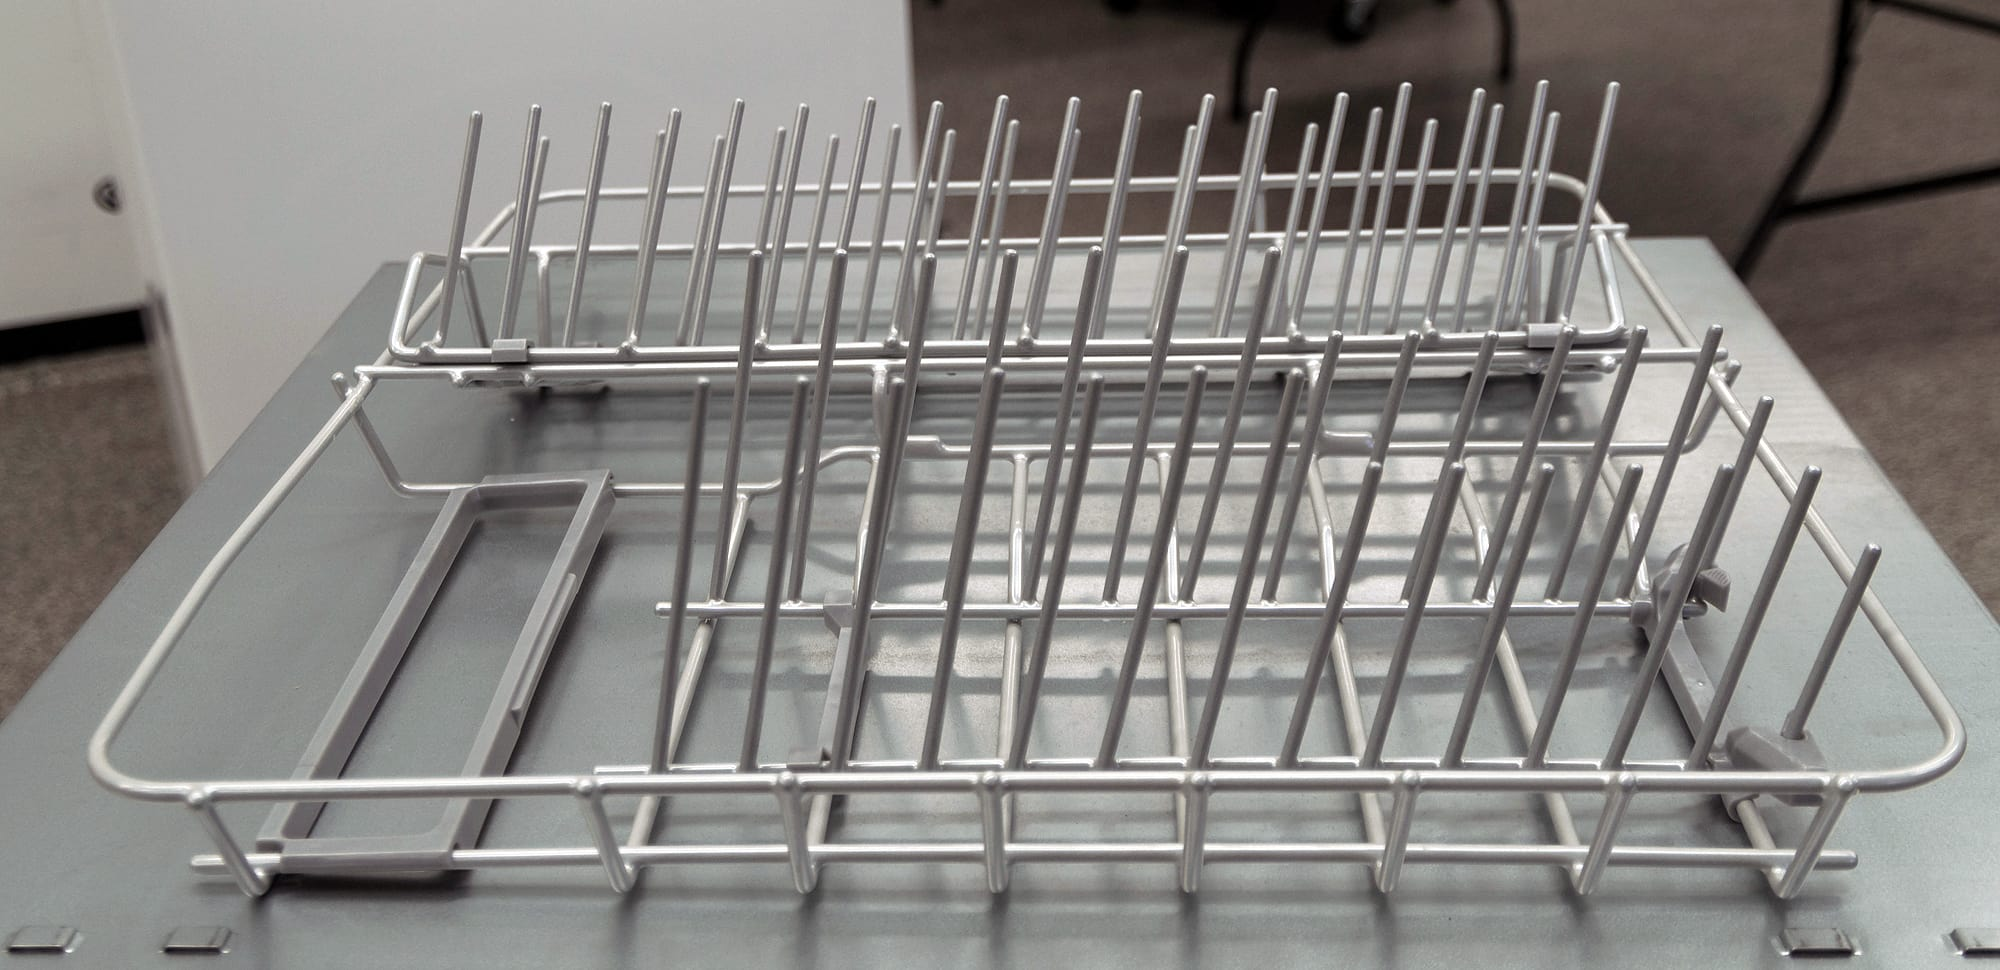 The main rack can be removed entirely.